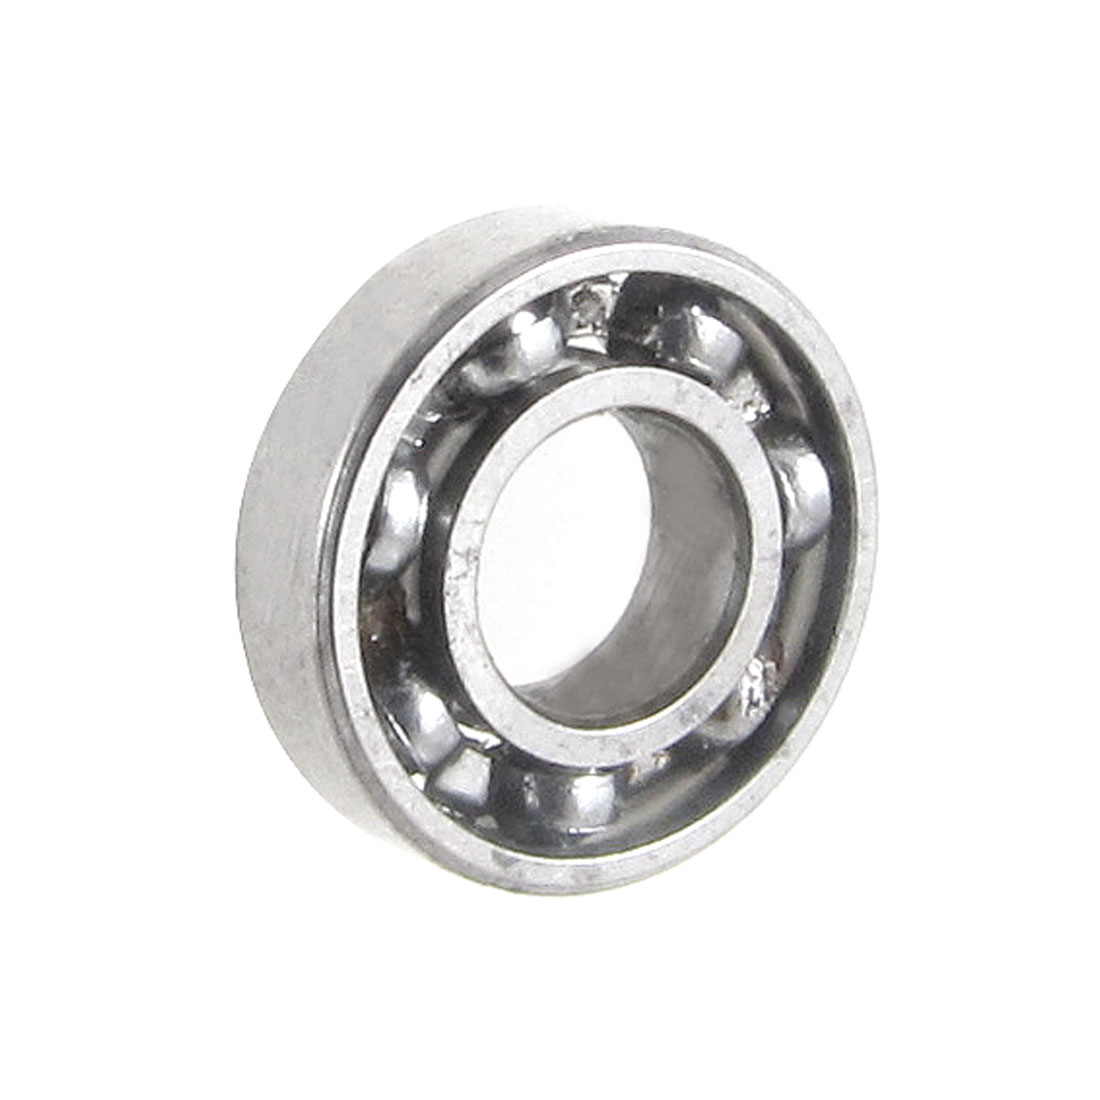 5mm x 11mm x 3mm Shields Radial Miniature Deep Groove Ball Bearing Silver Tone